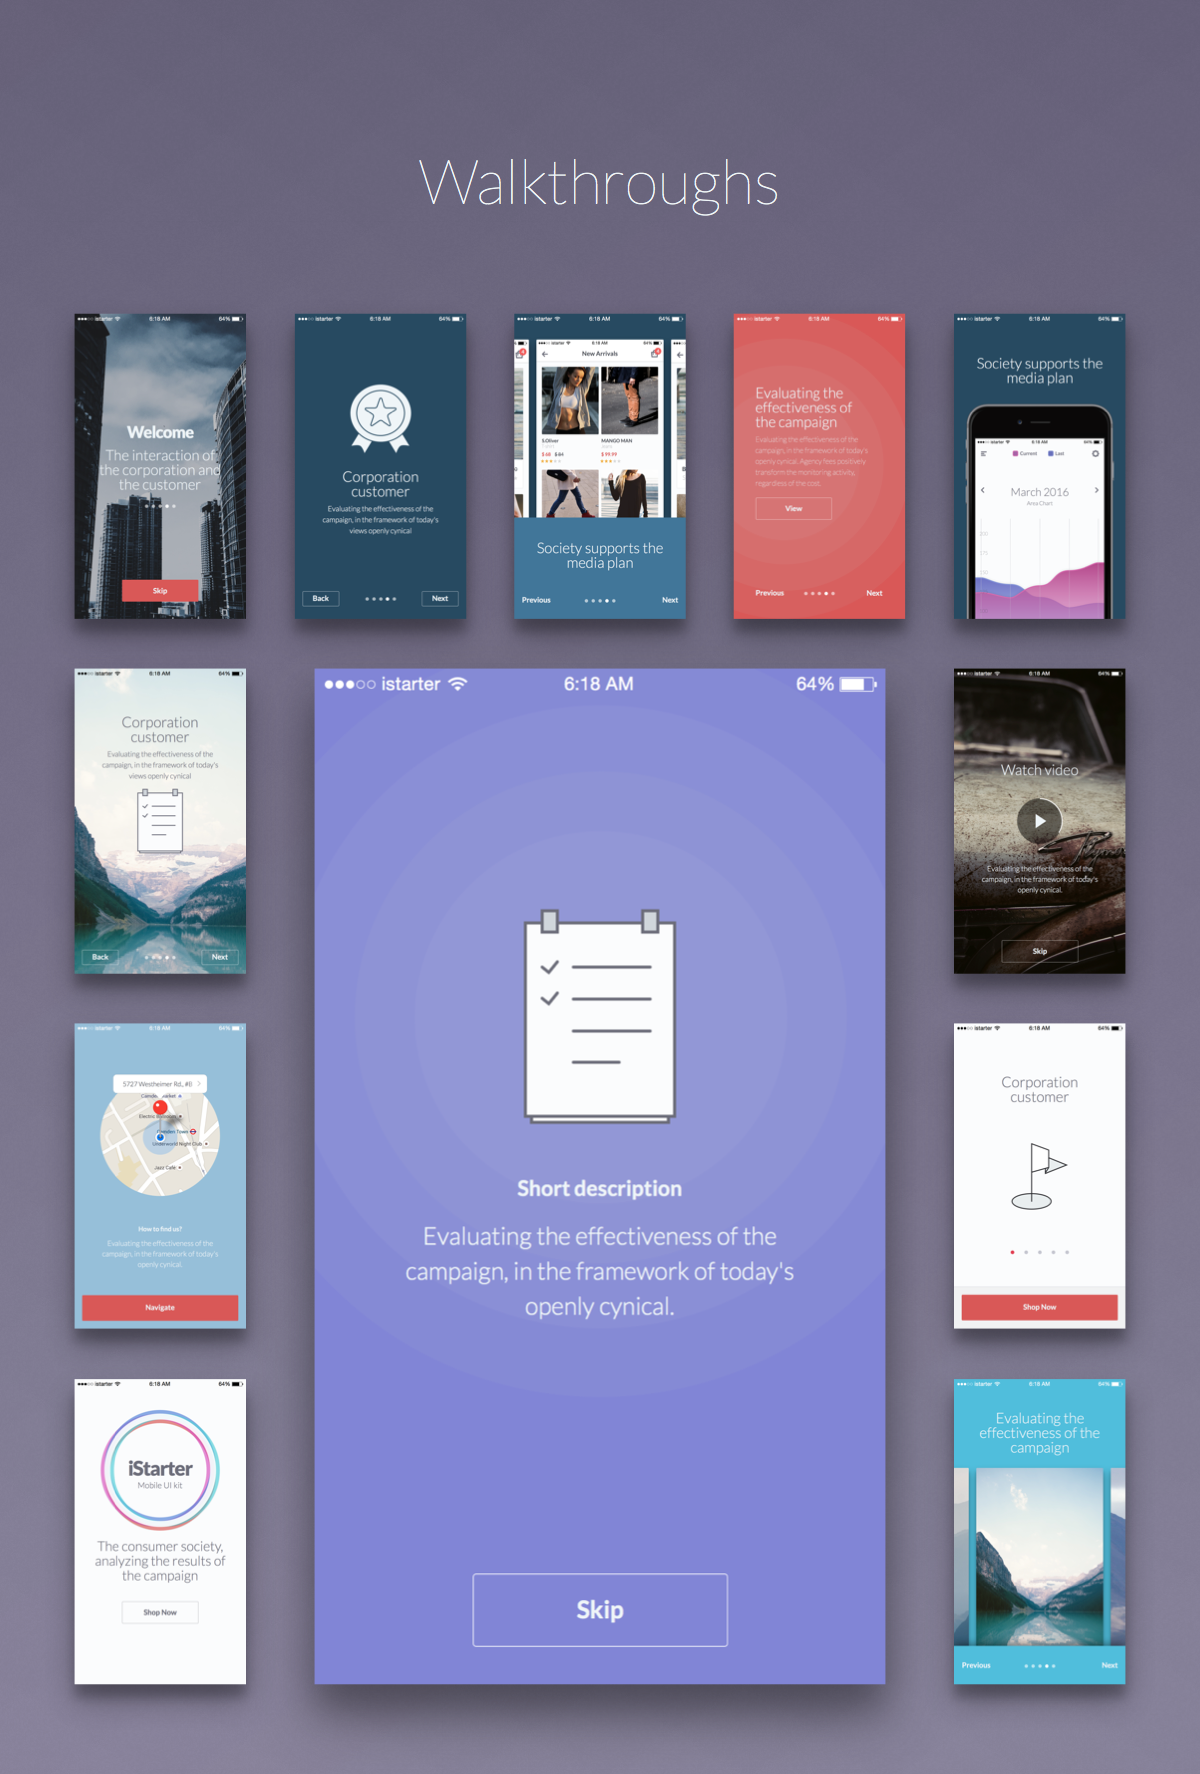 Kama iOS UI Kit for Sketch & Photoshop - 68747470733a2f2f302e73332e656e7661746f2e636f6d2f66696c65732f3136383134373535302f5468656d65253230507265766965772f352532302d25323077616c6b7468726f7567682e706e67